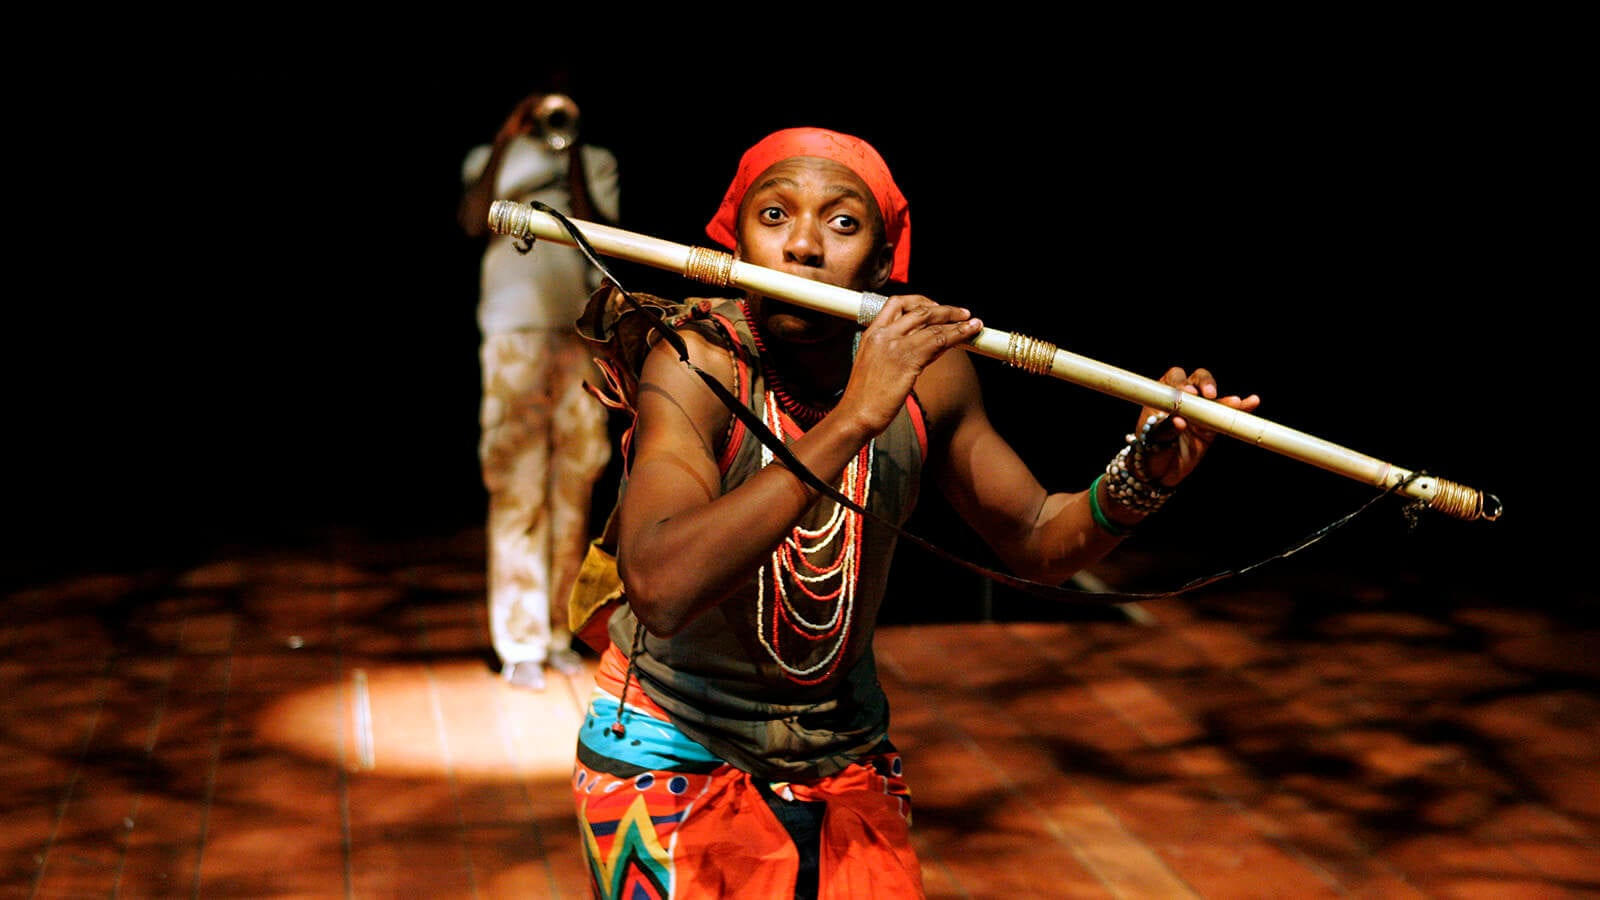 The Magic Flute Mhlekazi Andy Mosiea as Tamino in The Magic Flute Impempe Yomlingo Photo by Keith Pattison